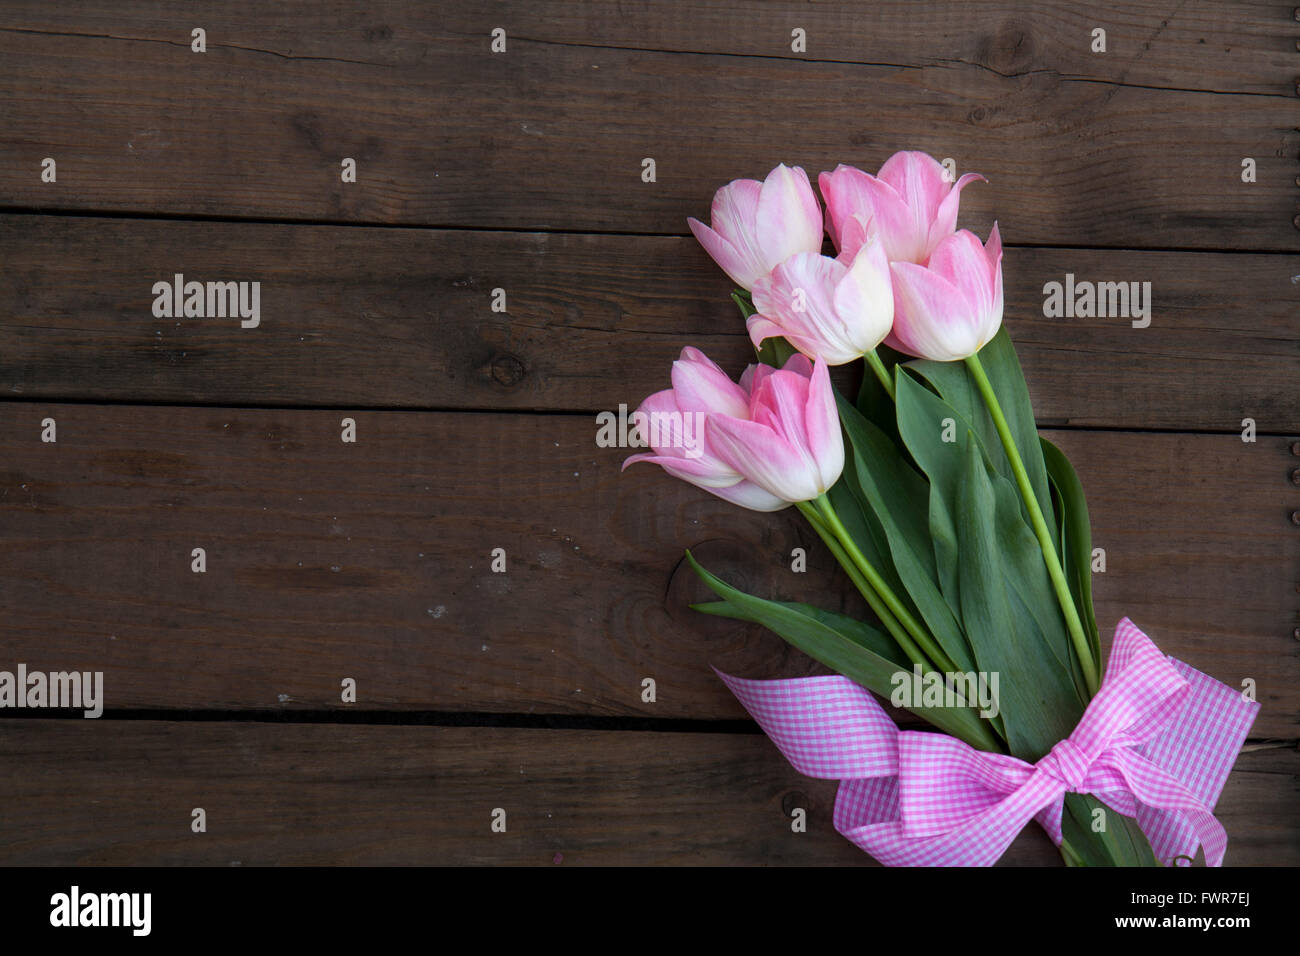 Beautiful bouquet of pink tulips on dark wooden background - Stock Image